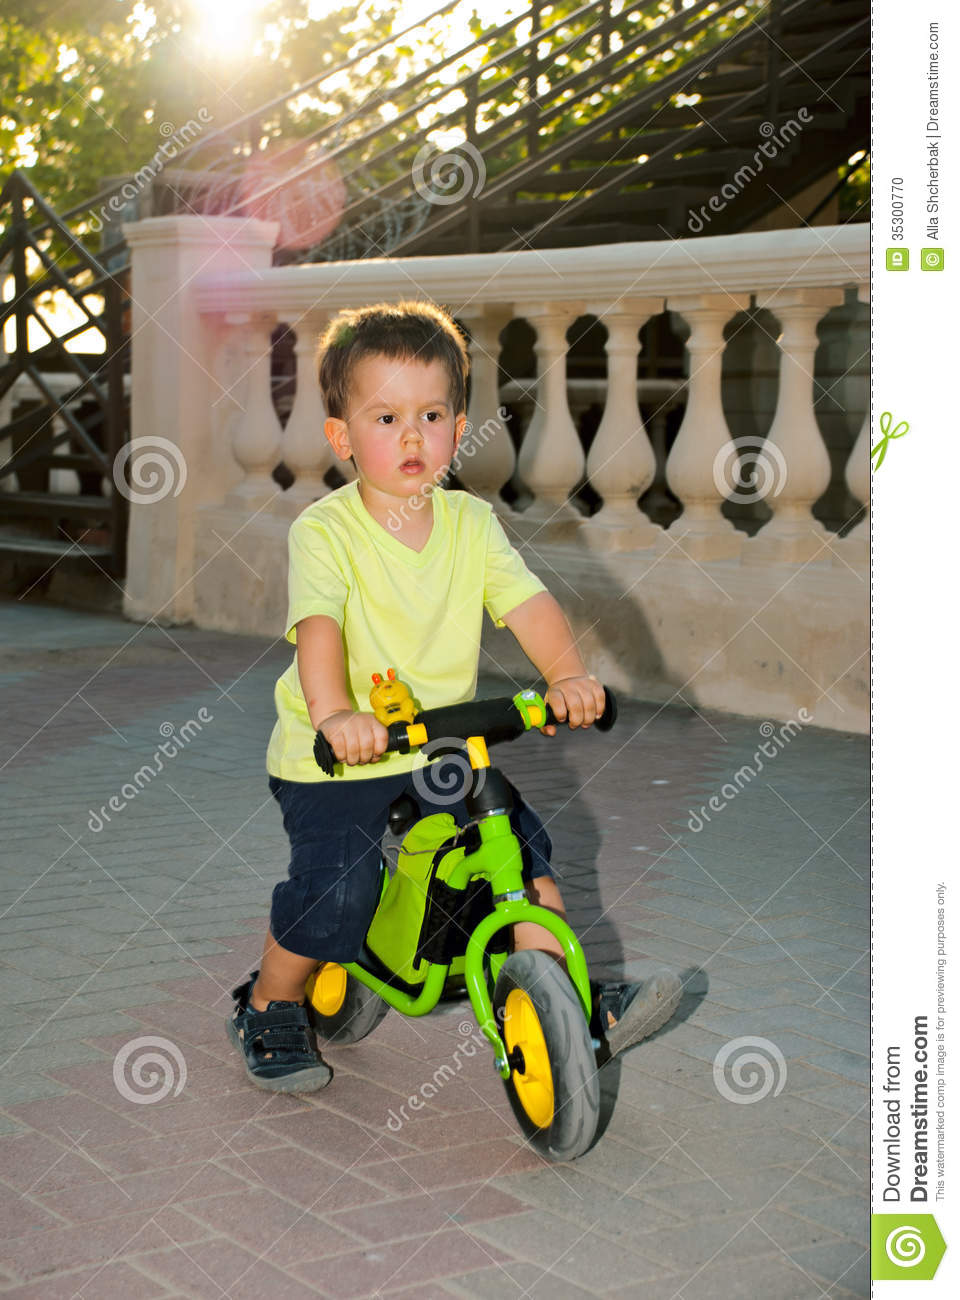 Kids Balance Bike >> Baby Boy Riding On His First Bike Without Pedals Stock Photo - Image: 35300770